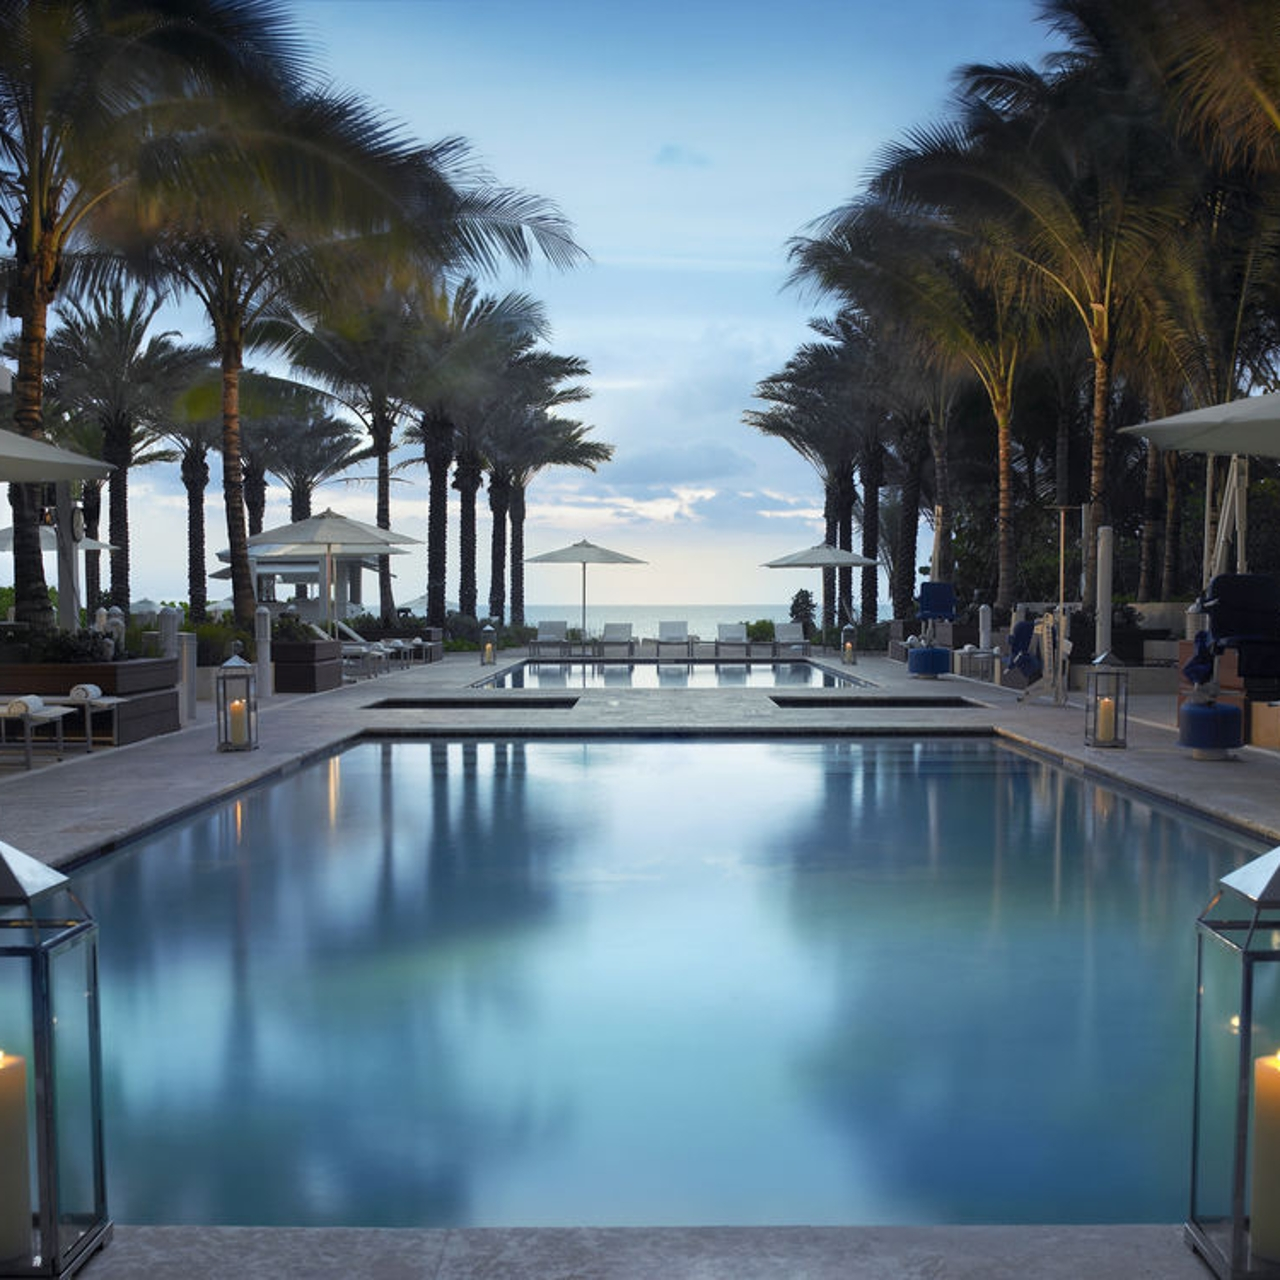 Grand Beach Hotel Surfside United States Of America At Hrs With Free Services